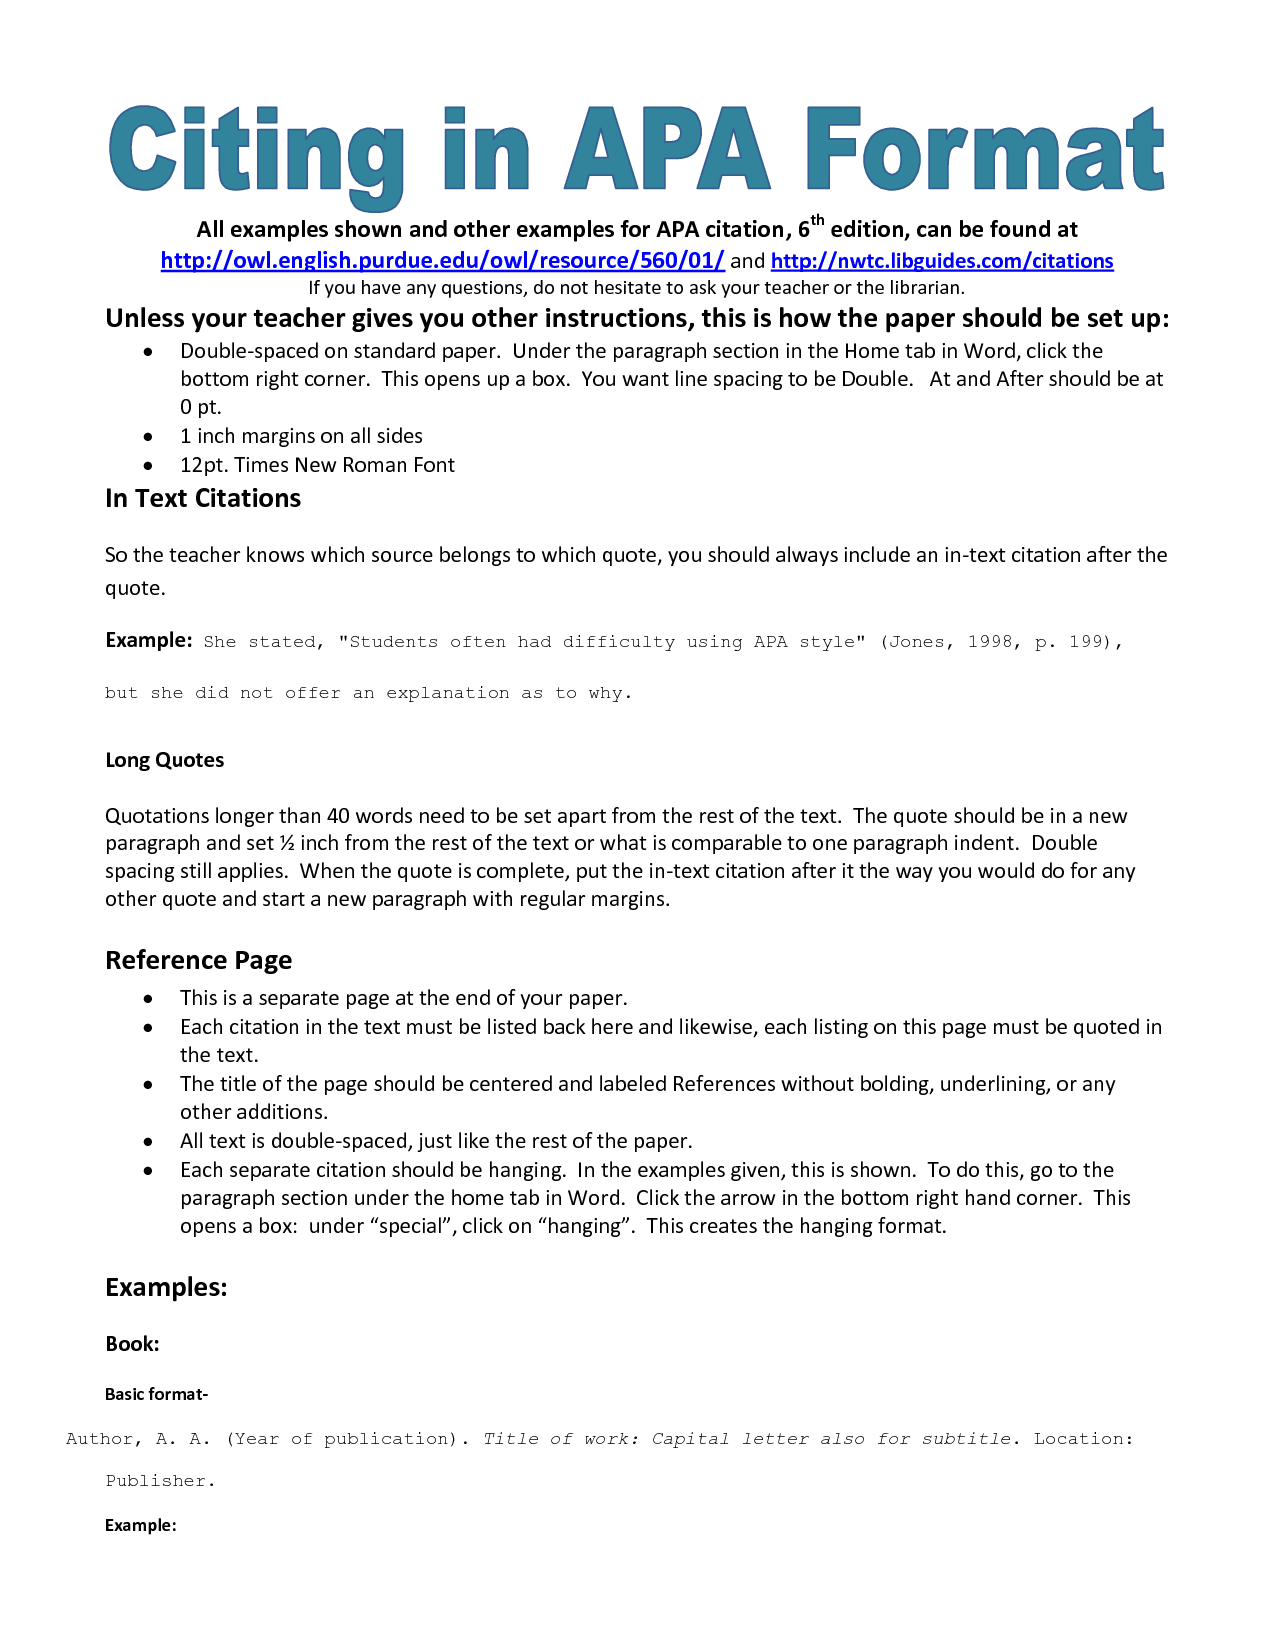 Deviance Essays  Best Ideas About Apa Style Reference Apa Style  Best Ideas About Apa  Style Reference Cover Letter Apa Essay Papers  My Writing Process Essay also List Of Narrative Essay Topics Apa Format For An Essay  Best Ideas About Apa Style Reference Apa  Steps To Write An Argumentative Essay